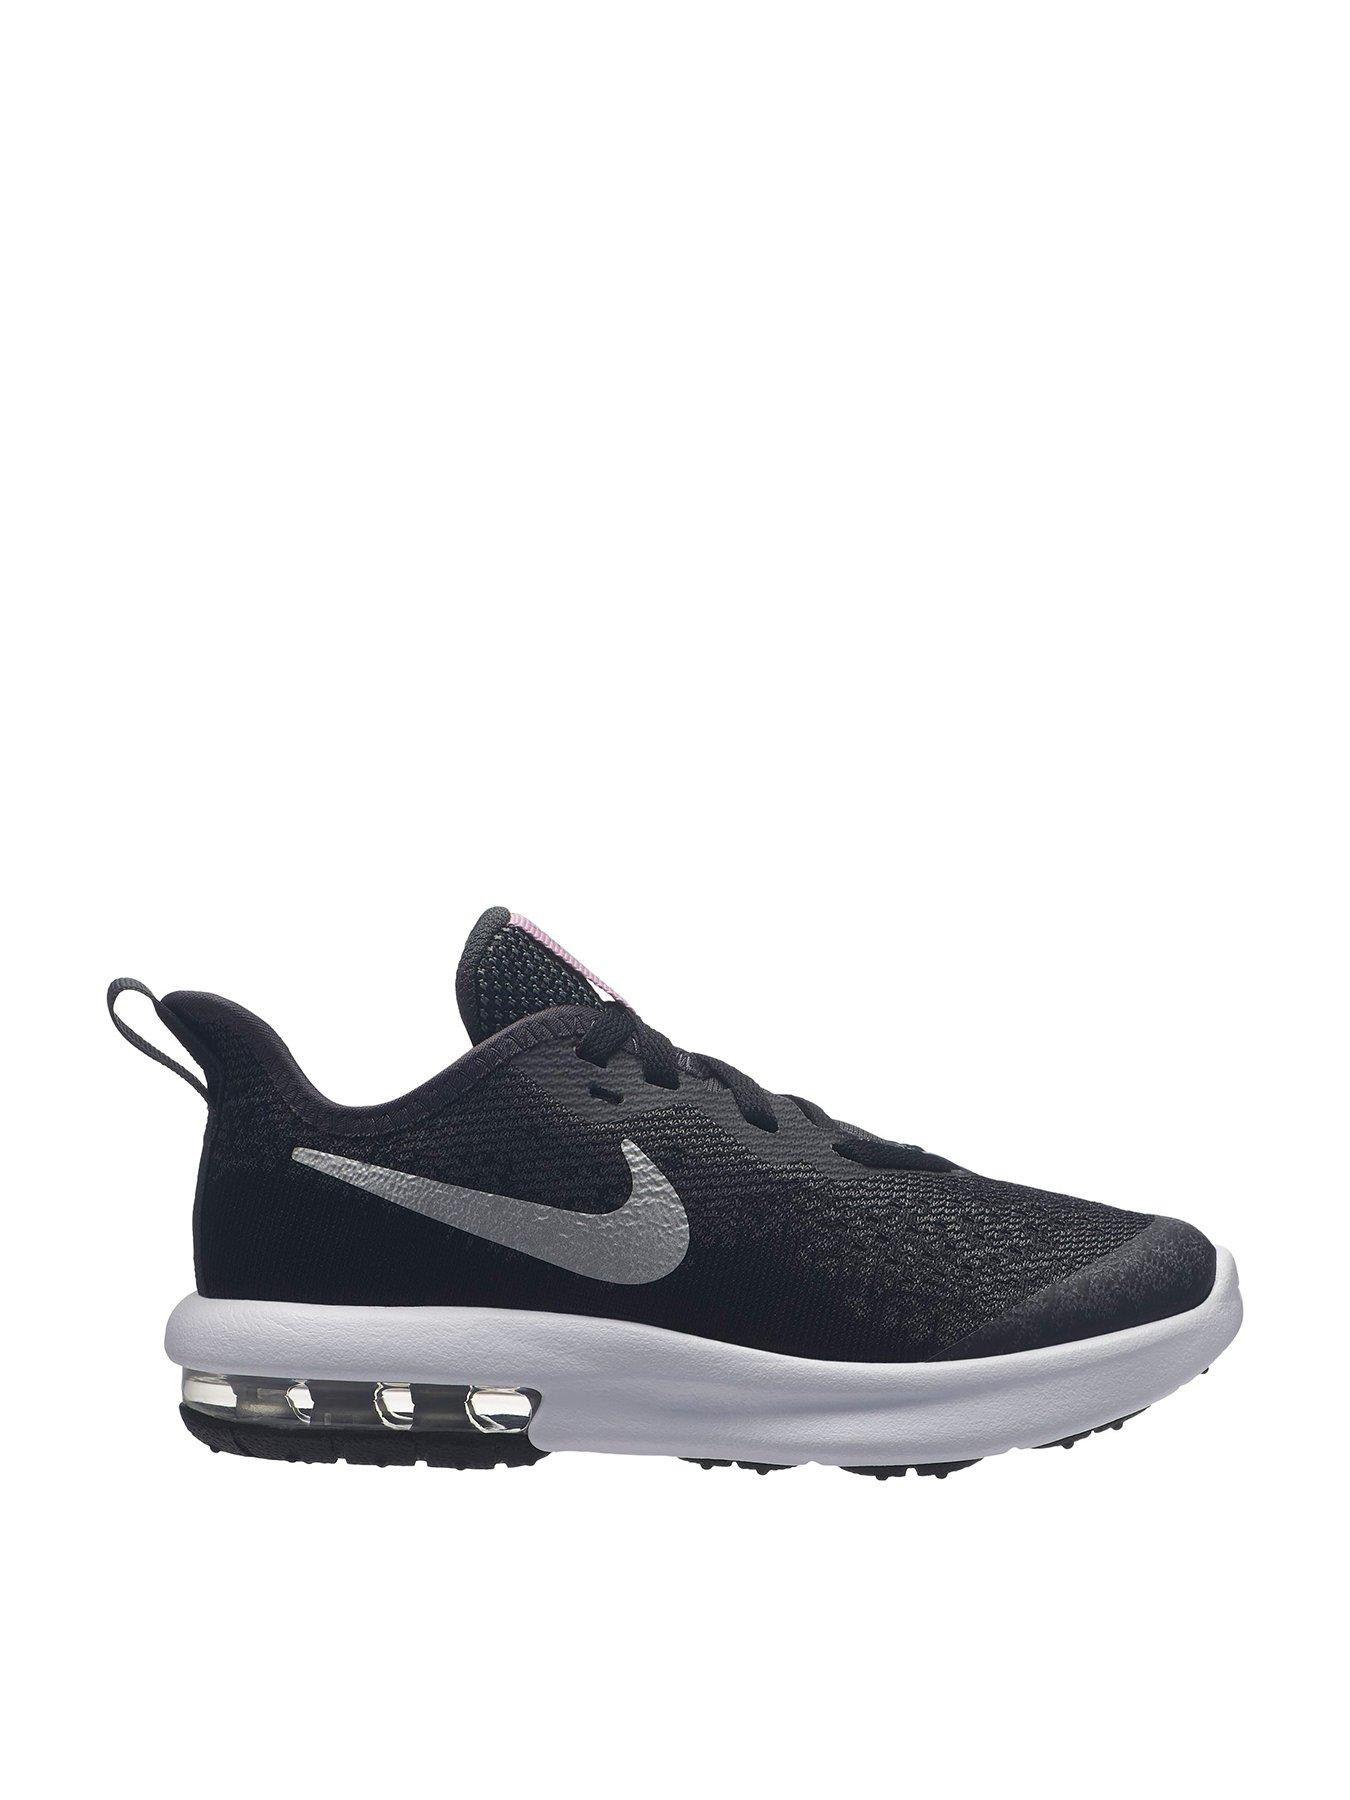 Air Max Sequent 4 Childrens Trainers Black